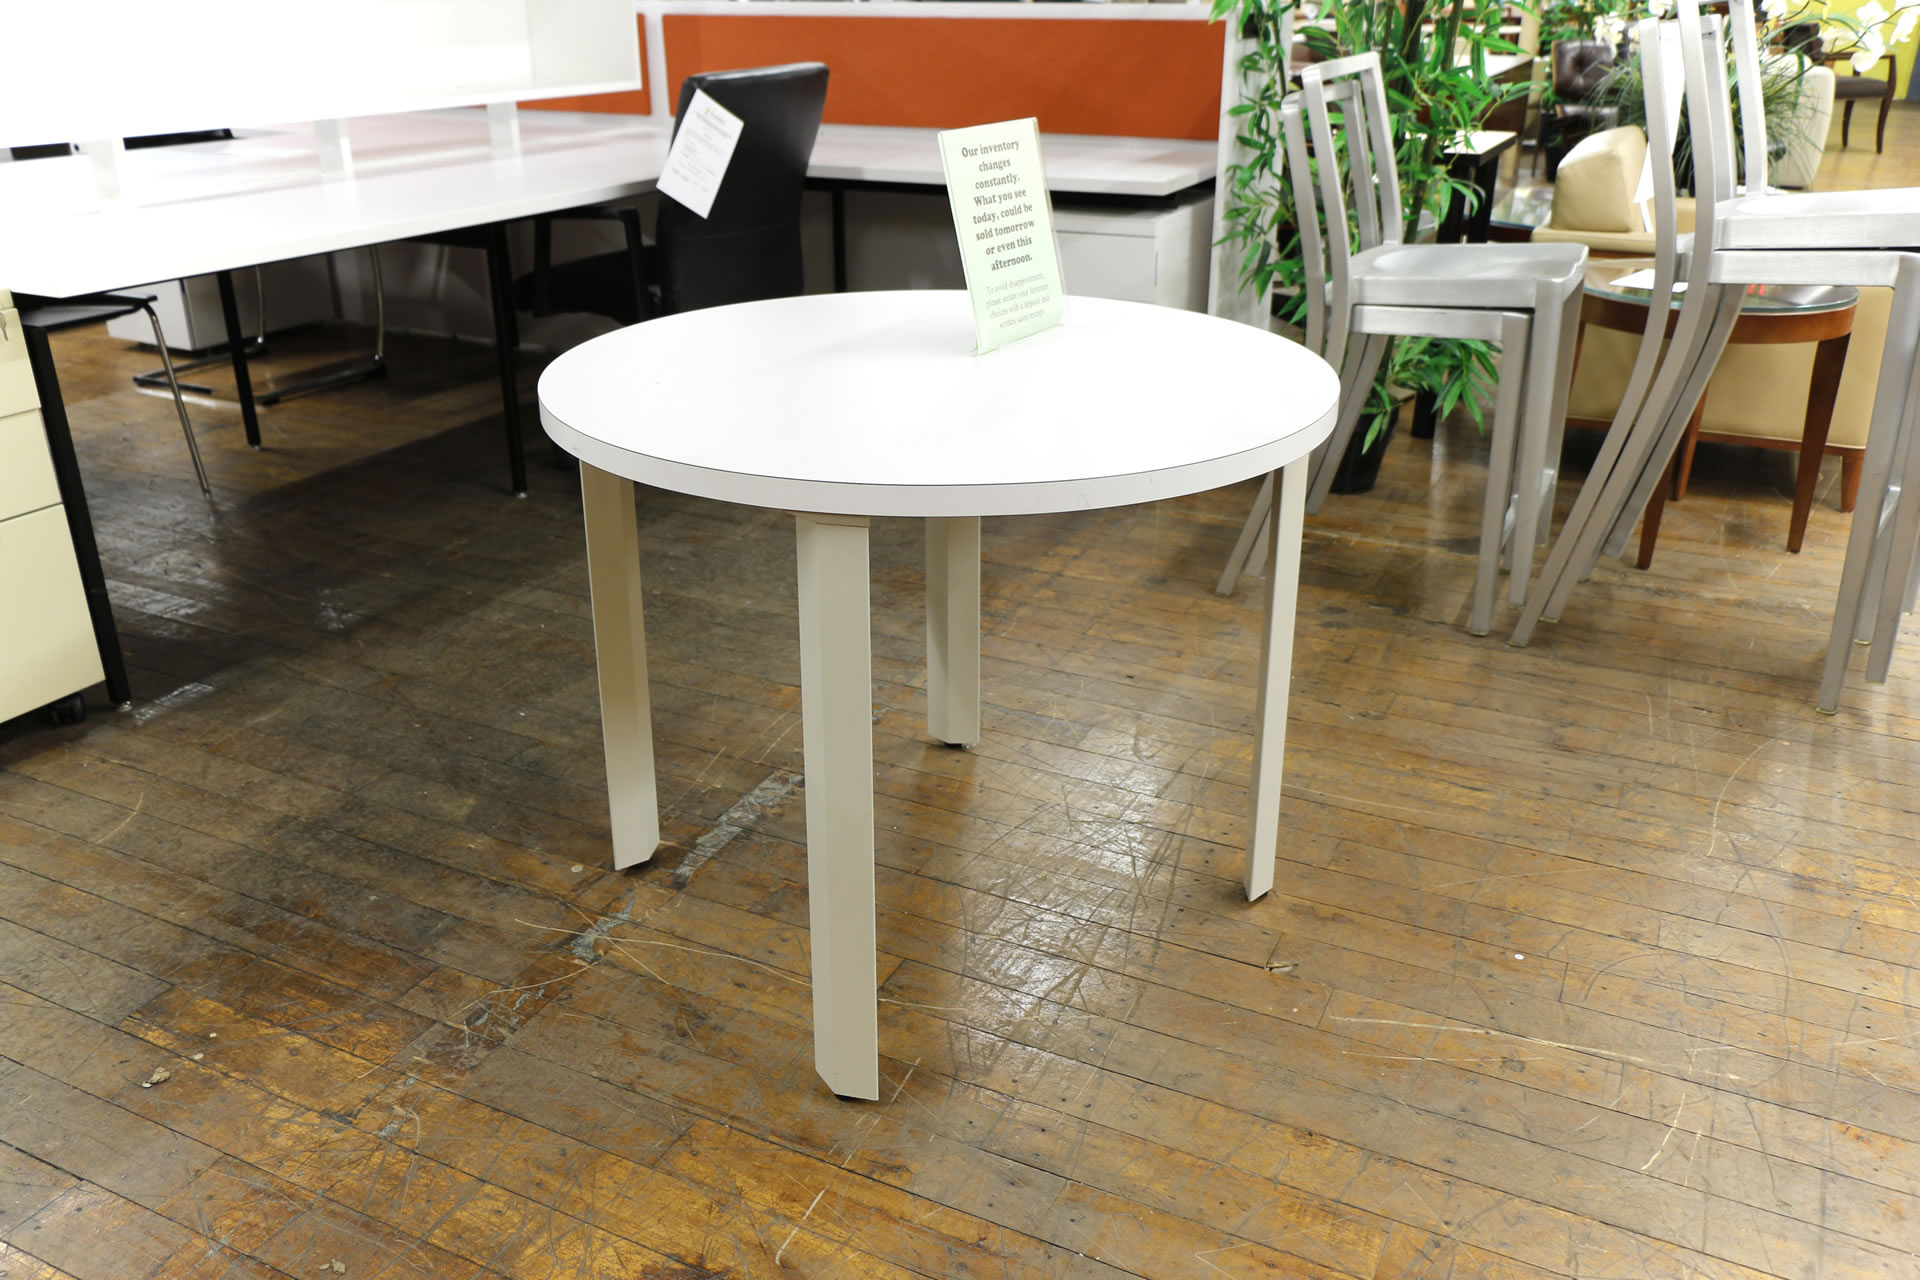 Knoll White Round Tables, 36″ & 42″